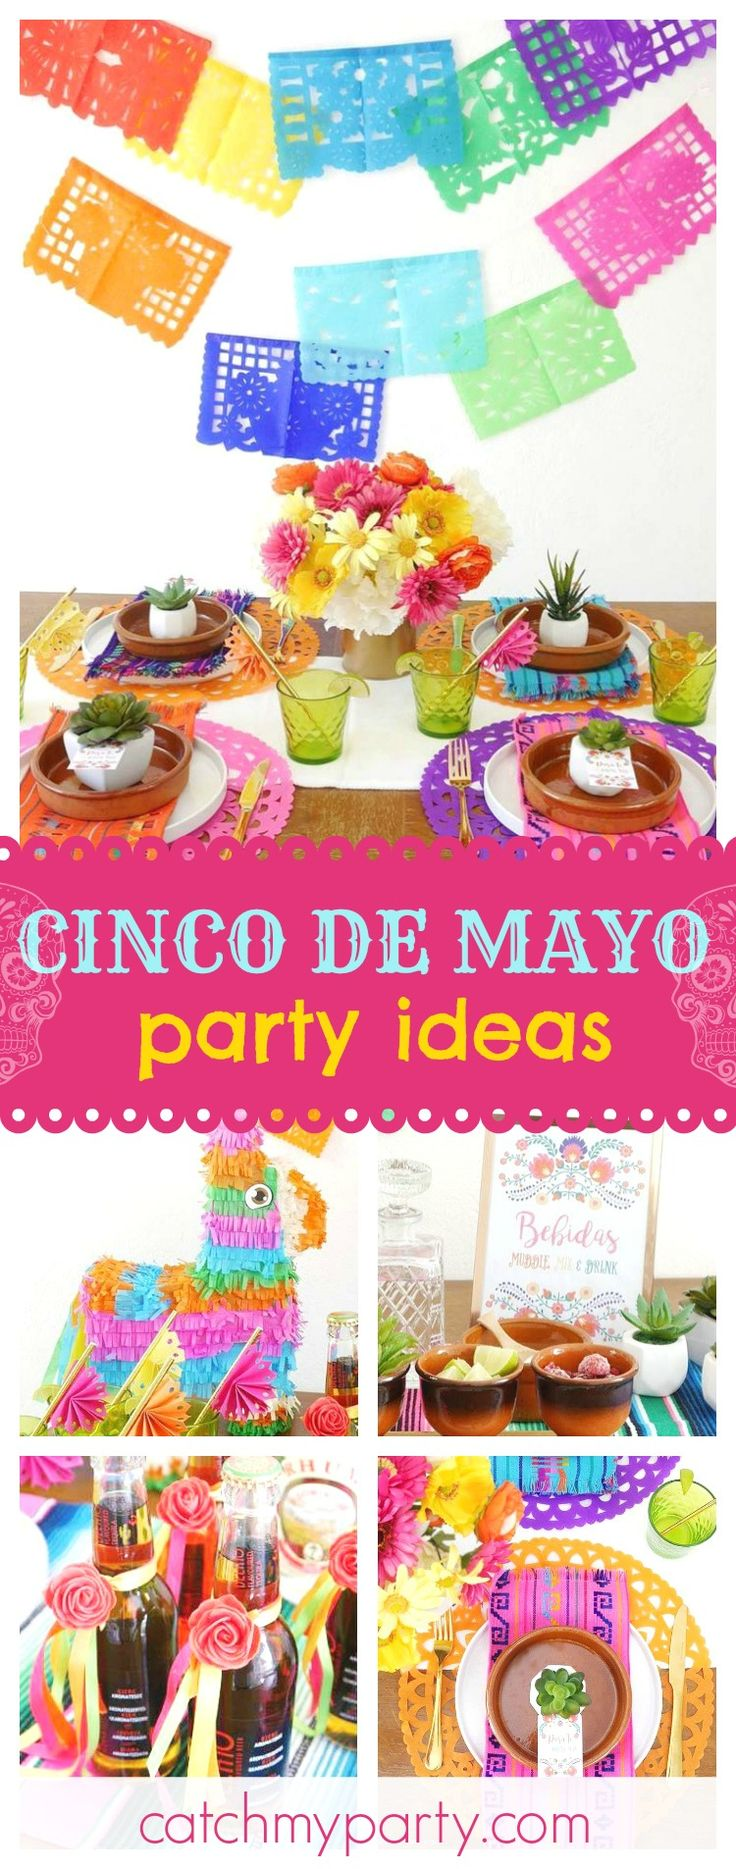 Office ideas for cinco de mayo - Check Out This Vibrant Colorful Cinco De Mayo Fiesta The Table Settings Are Gorgeous